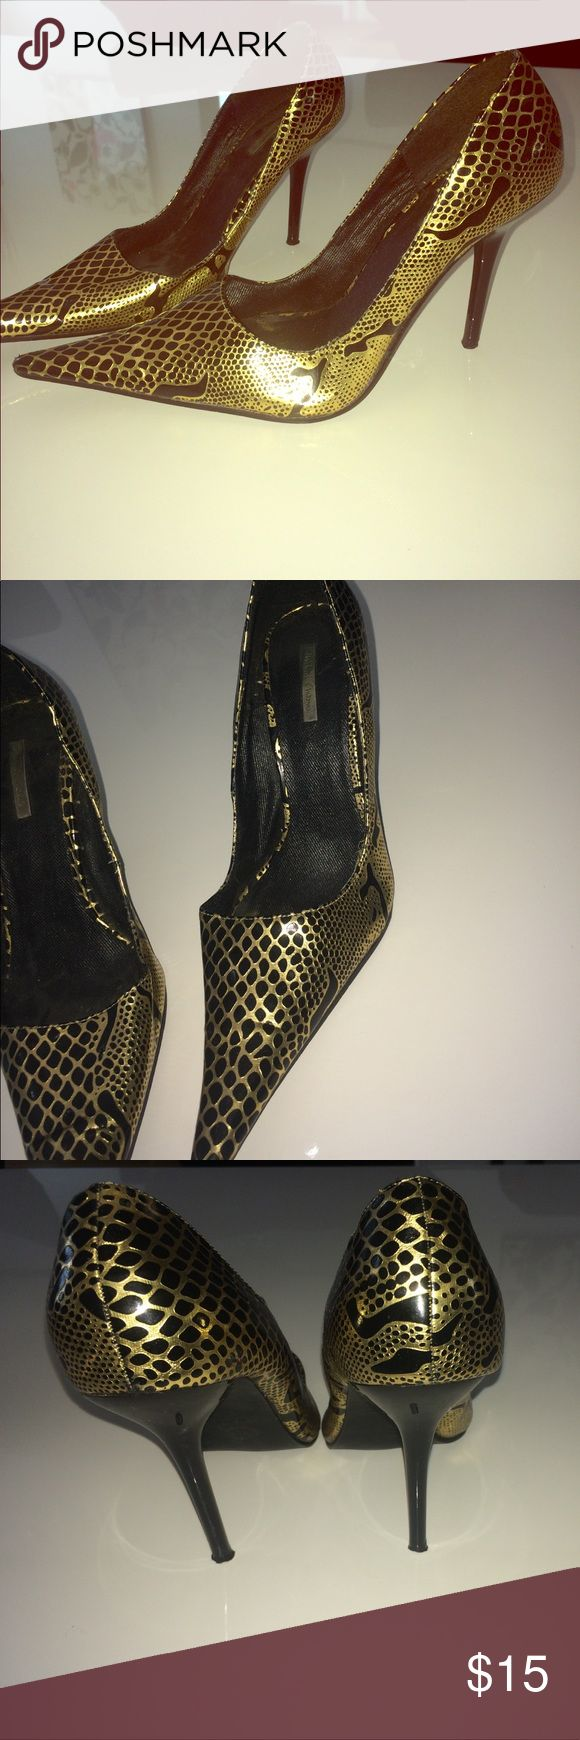 Black and gold pumps Black and gold snake skin pumps. Great condition. Size 7.... Michael Antonio Shoes